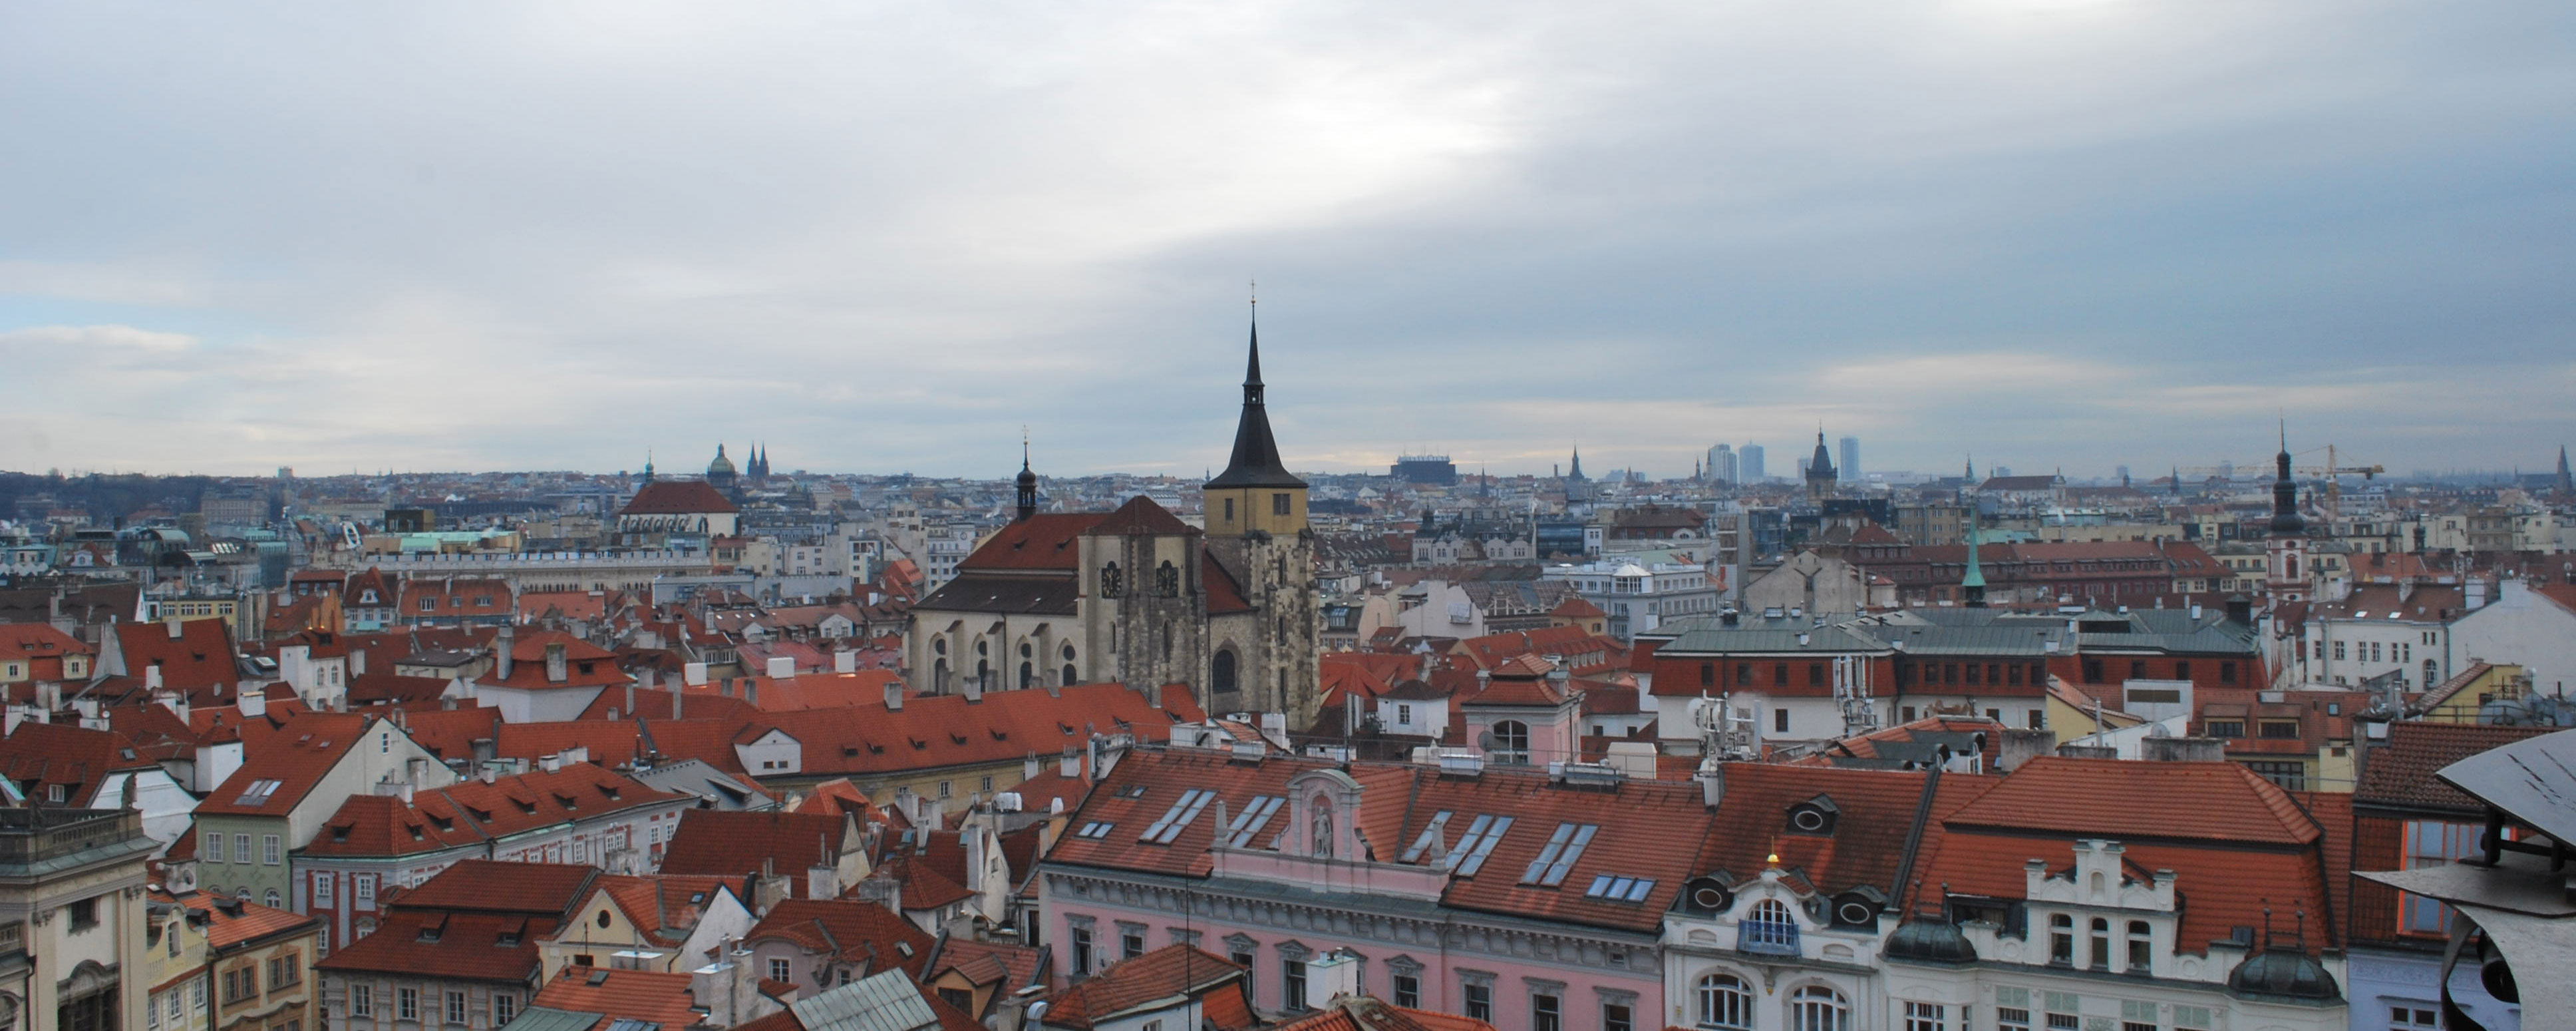 Visitare Praga in un weekend